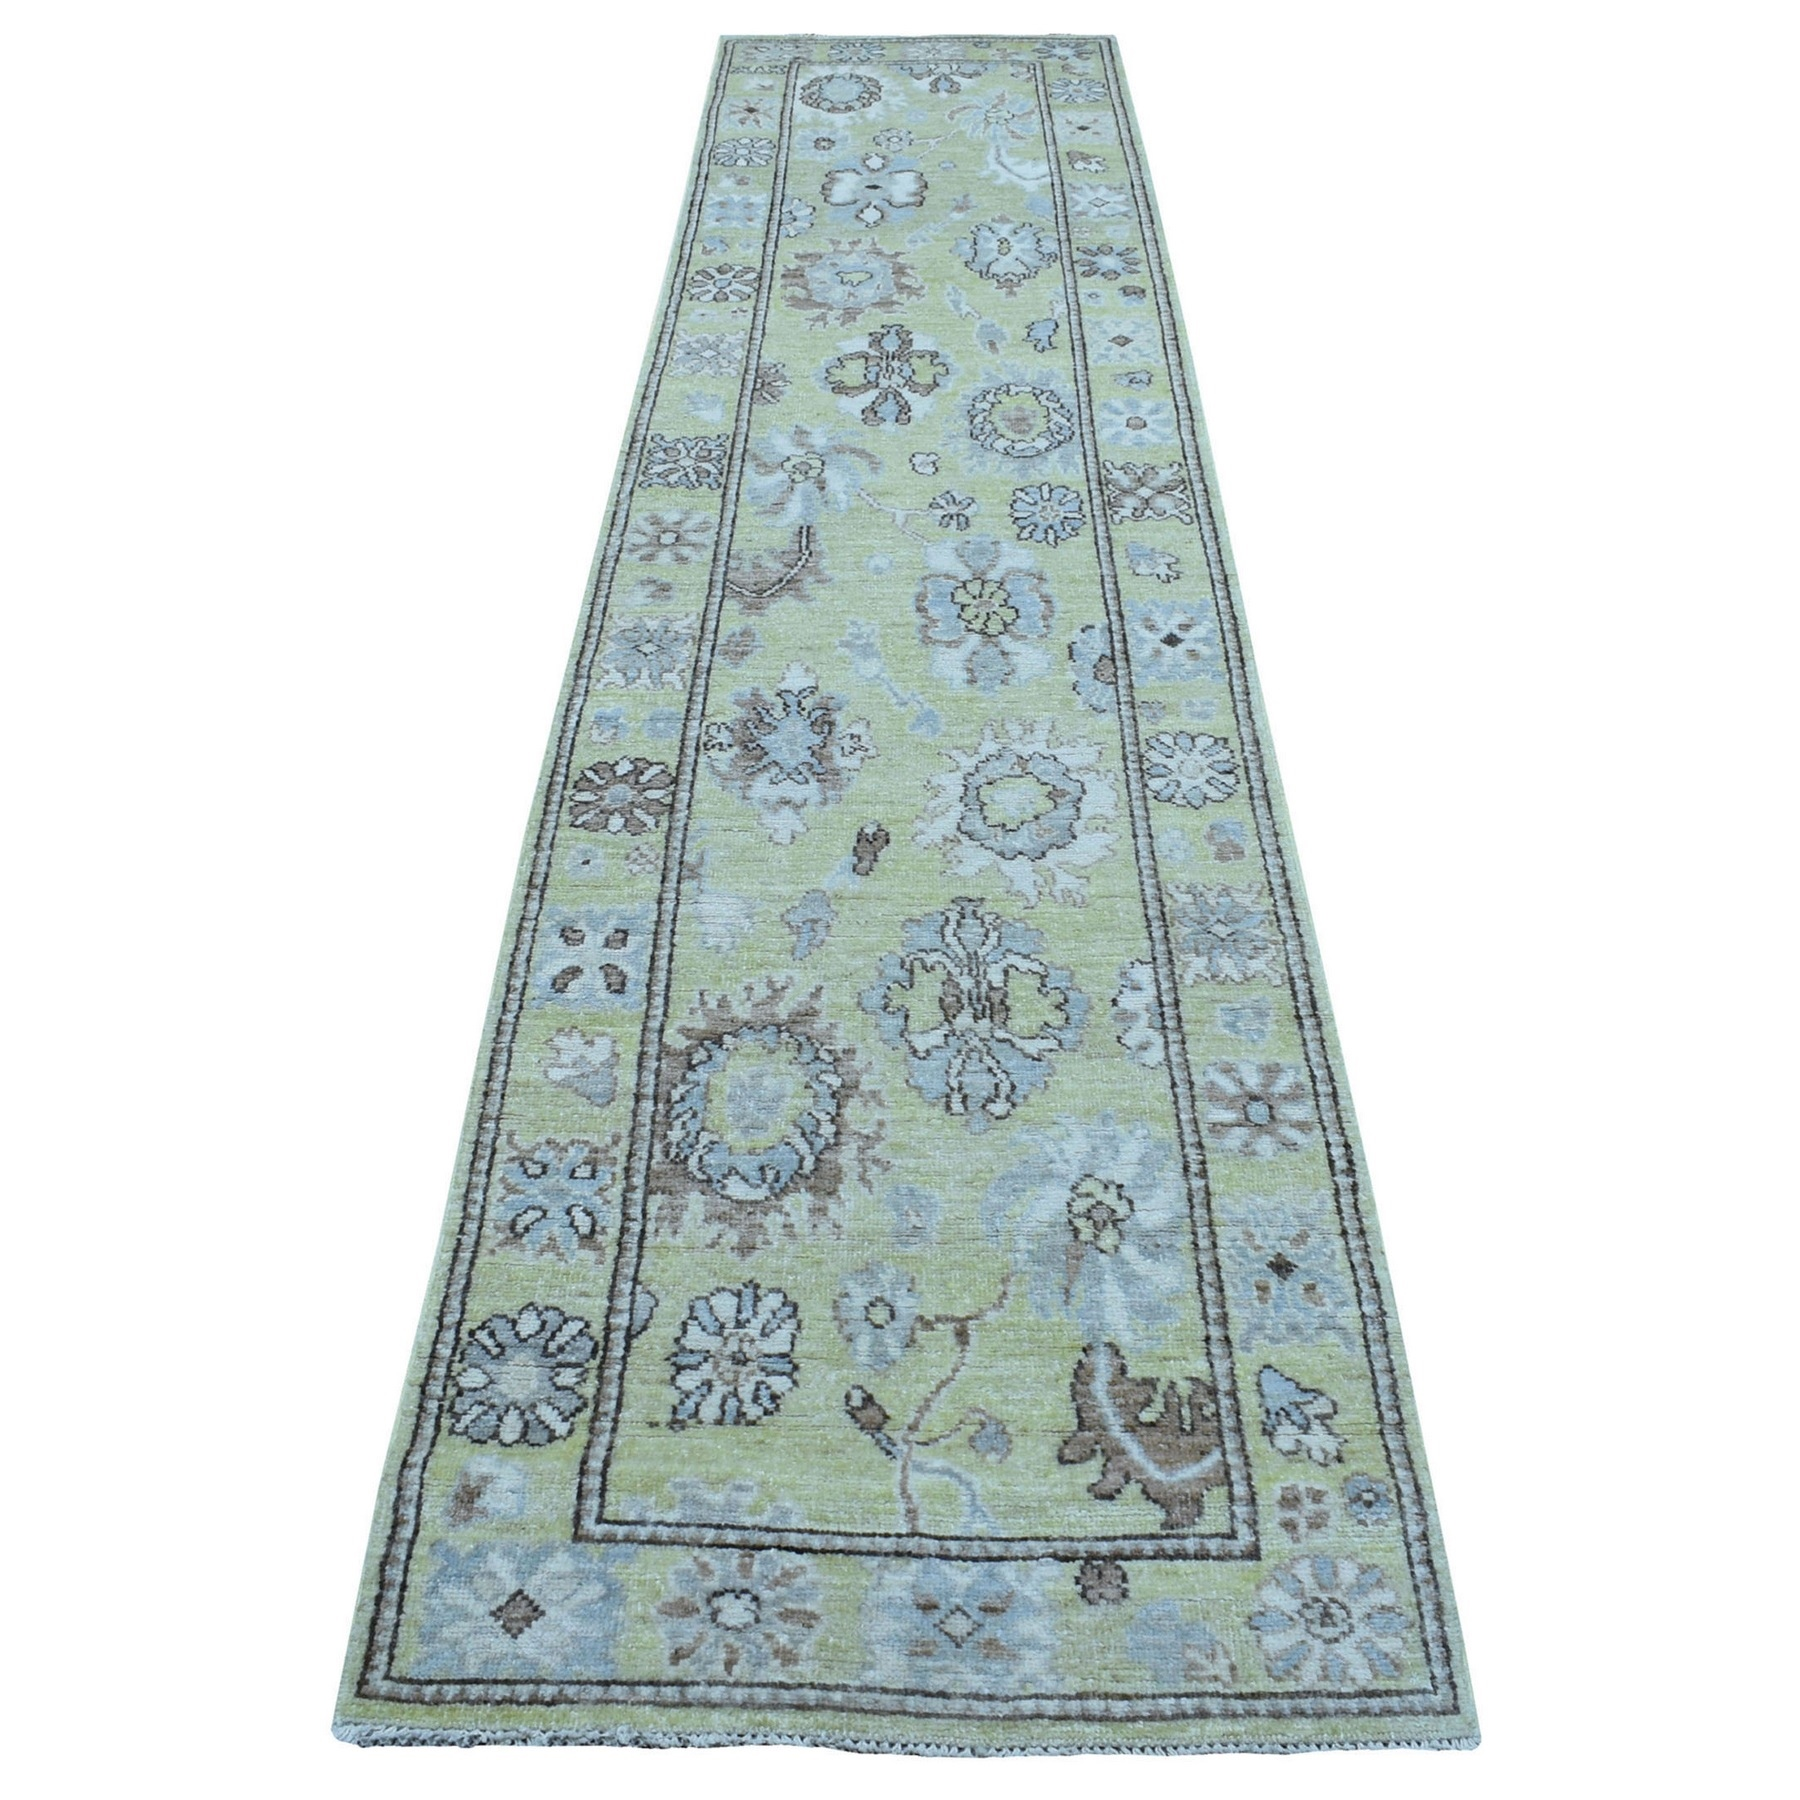 Oushak And Peshawar Rugs LUV609678